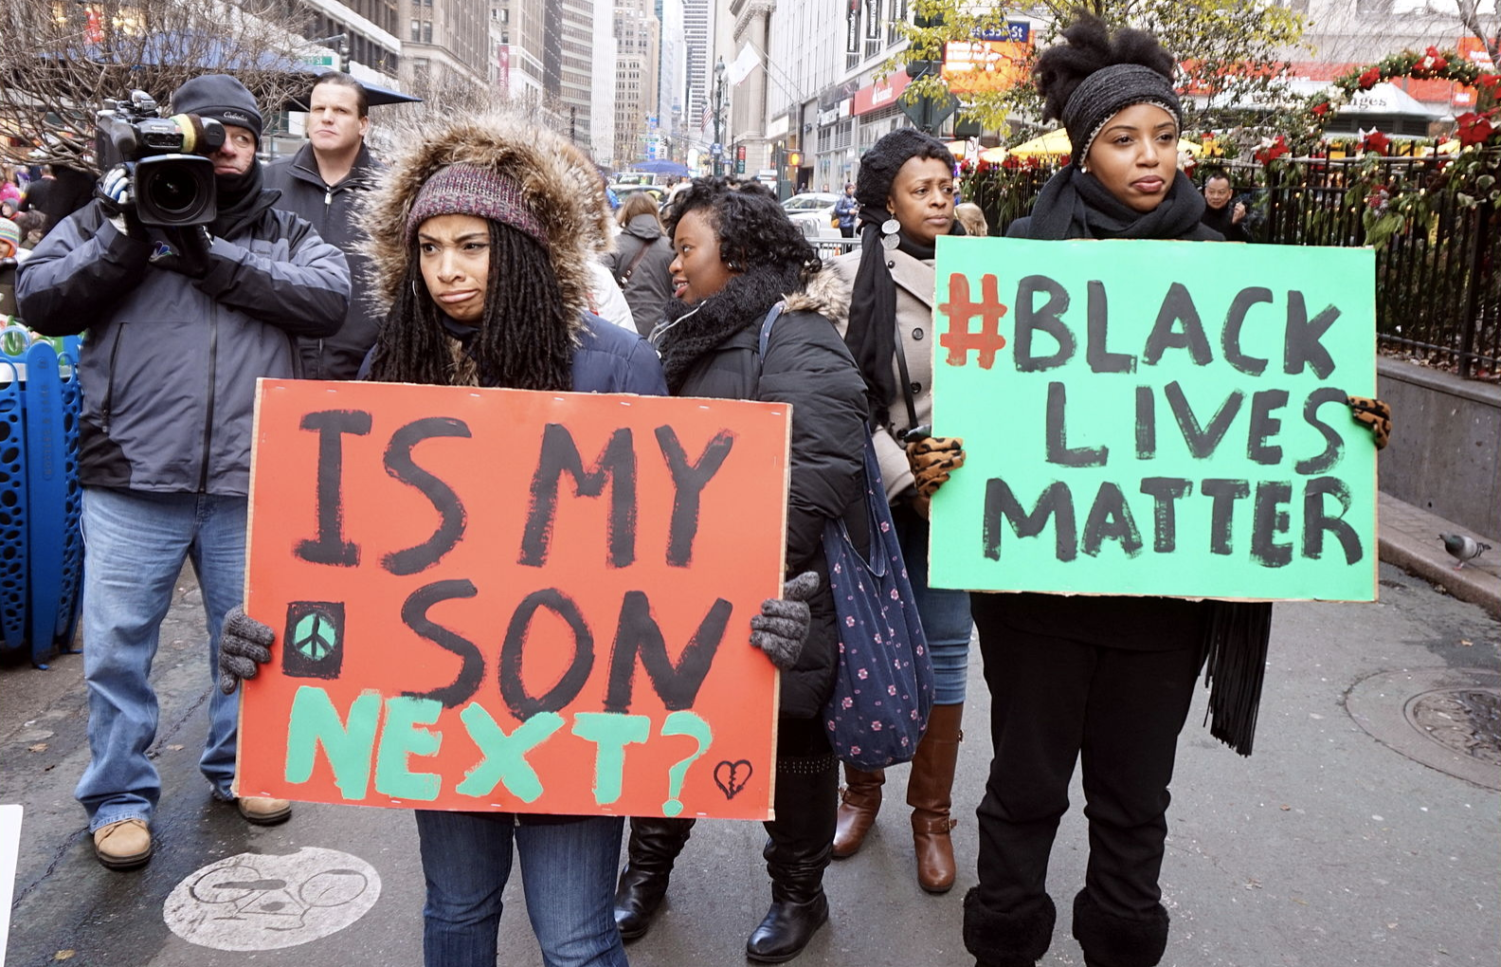 Women protest at a Black Lives Matter rally in New York City.